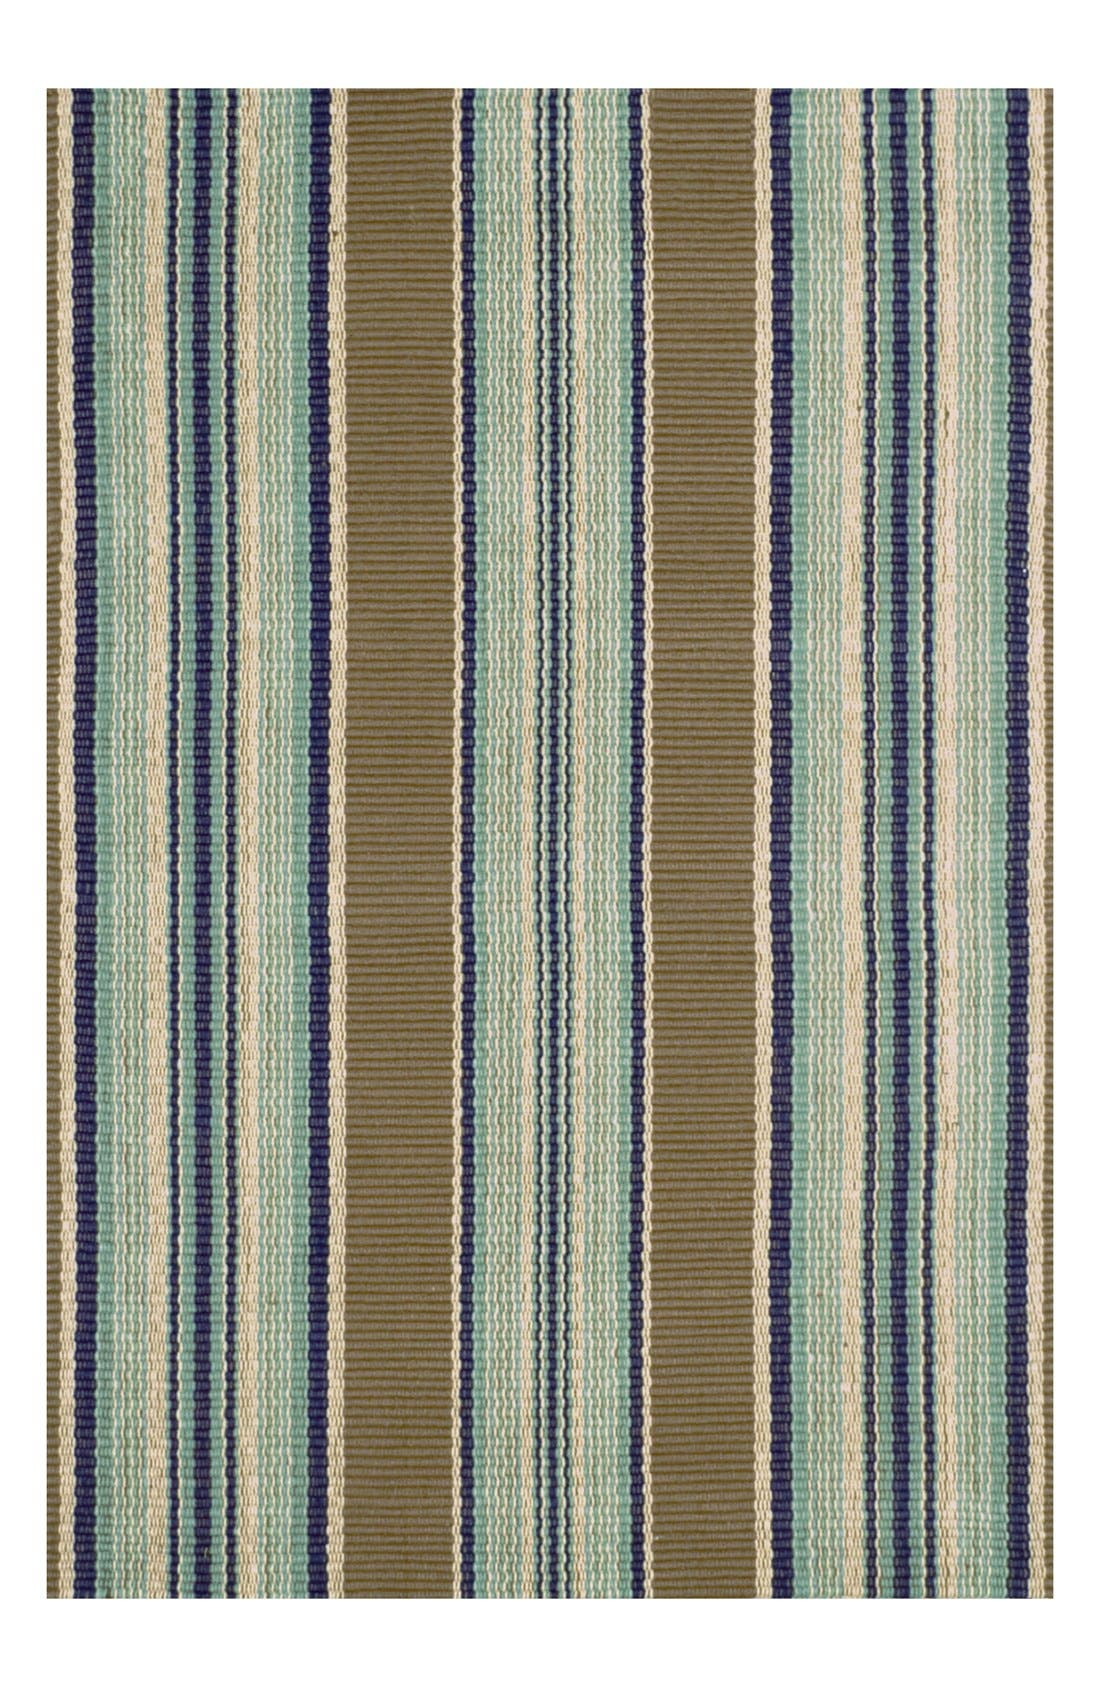 'Blue Heron' Stripe Cotton Rug.,                         Main,                         color, Blue/ Multi